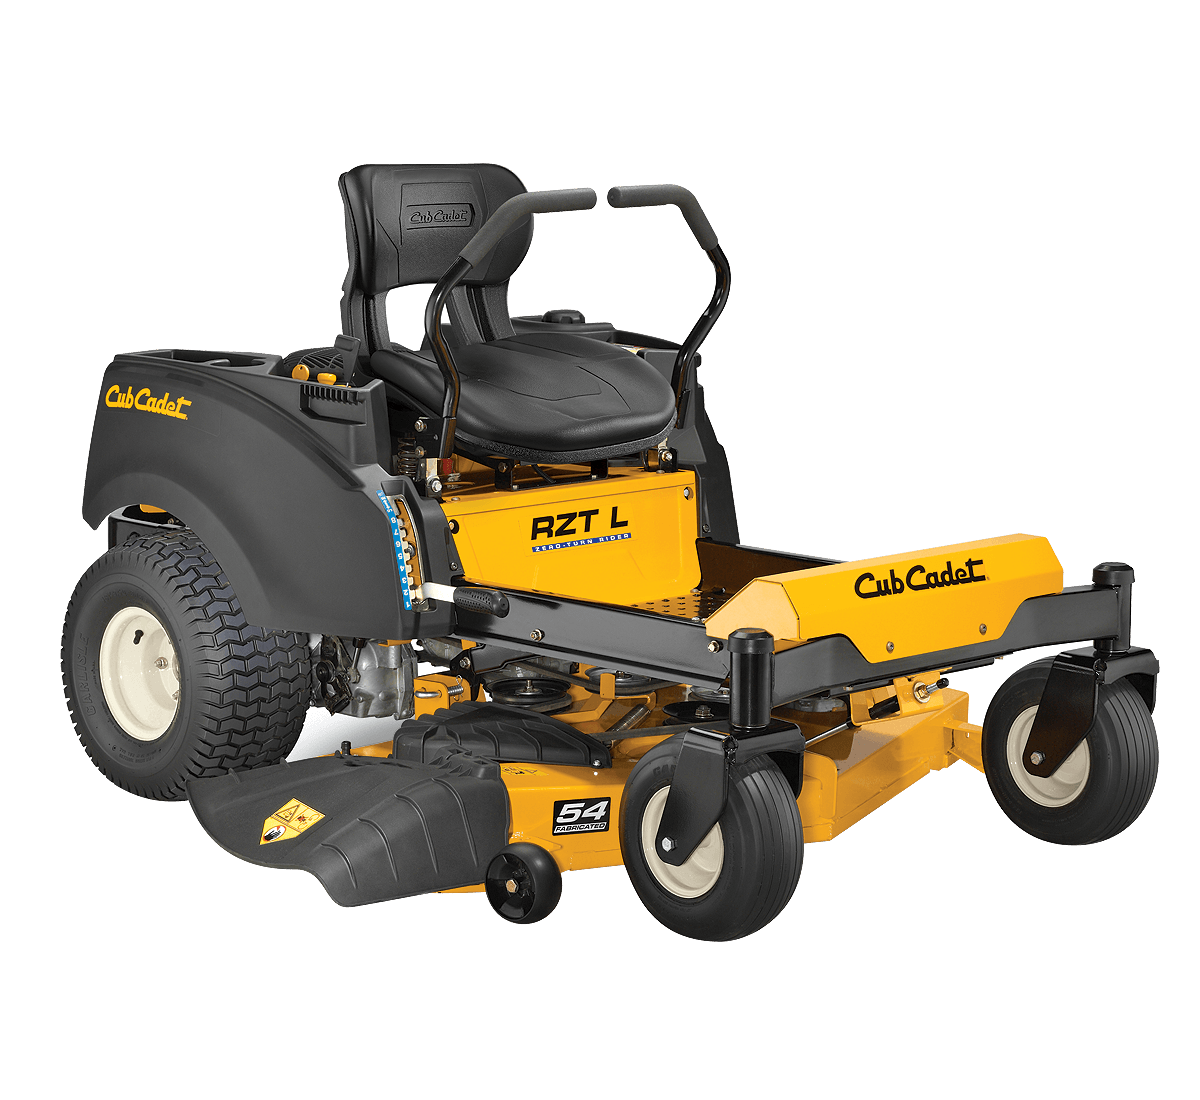 2017 Cub Cadet RZT L 54 KH in AULANDER, North Carolina